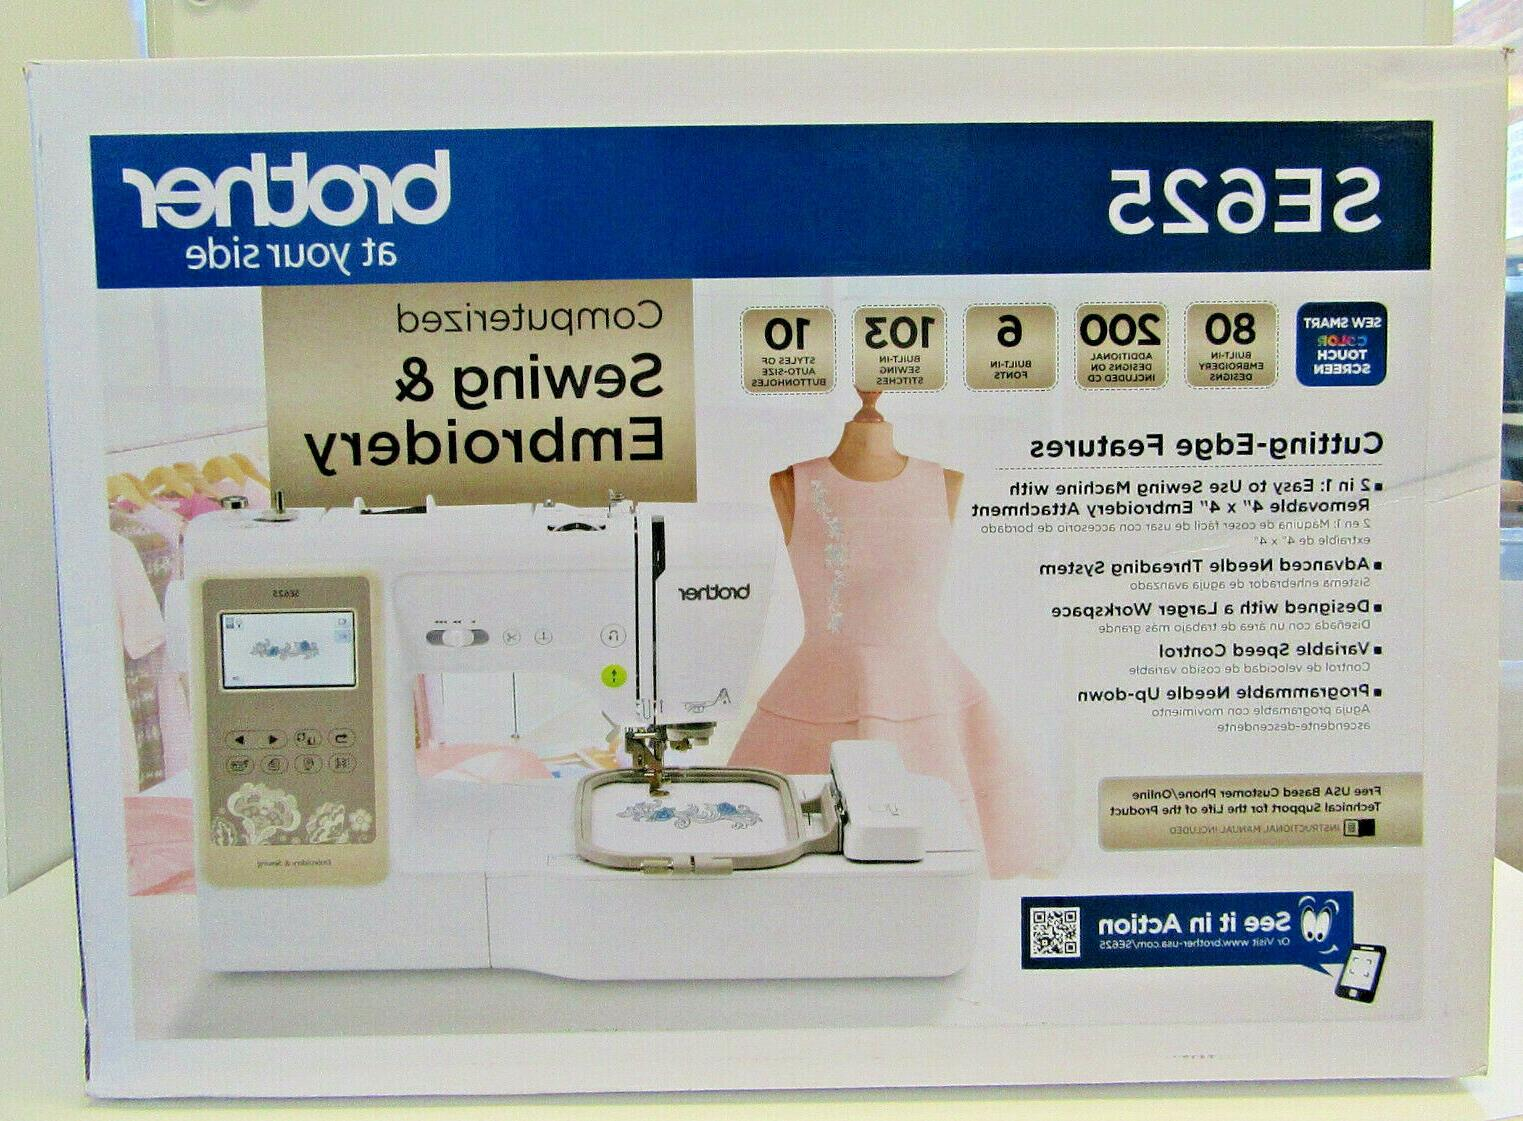 se625 computerized sewing and embroidery machine brand